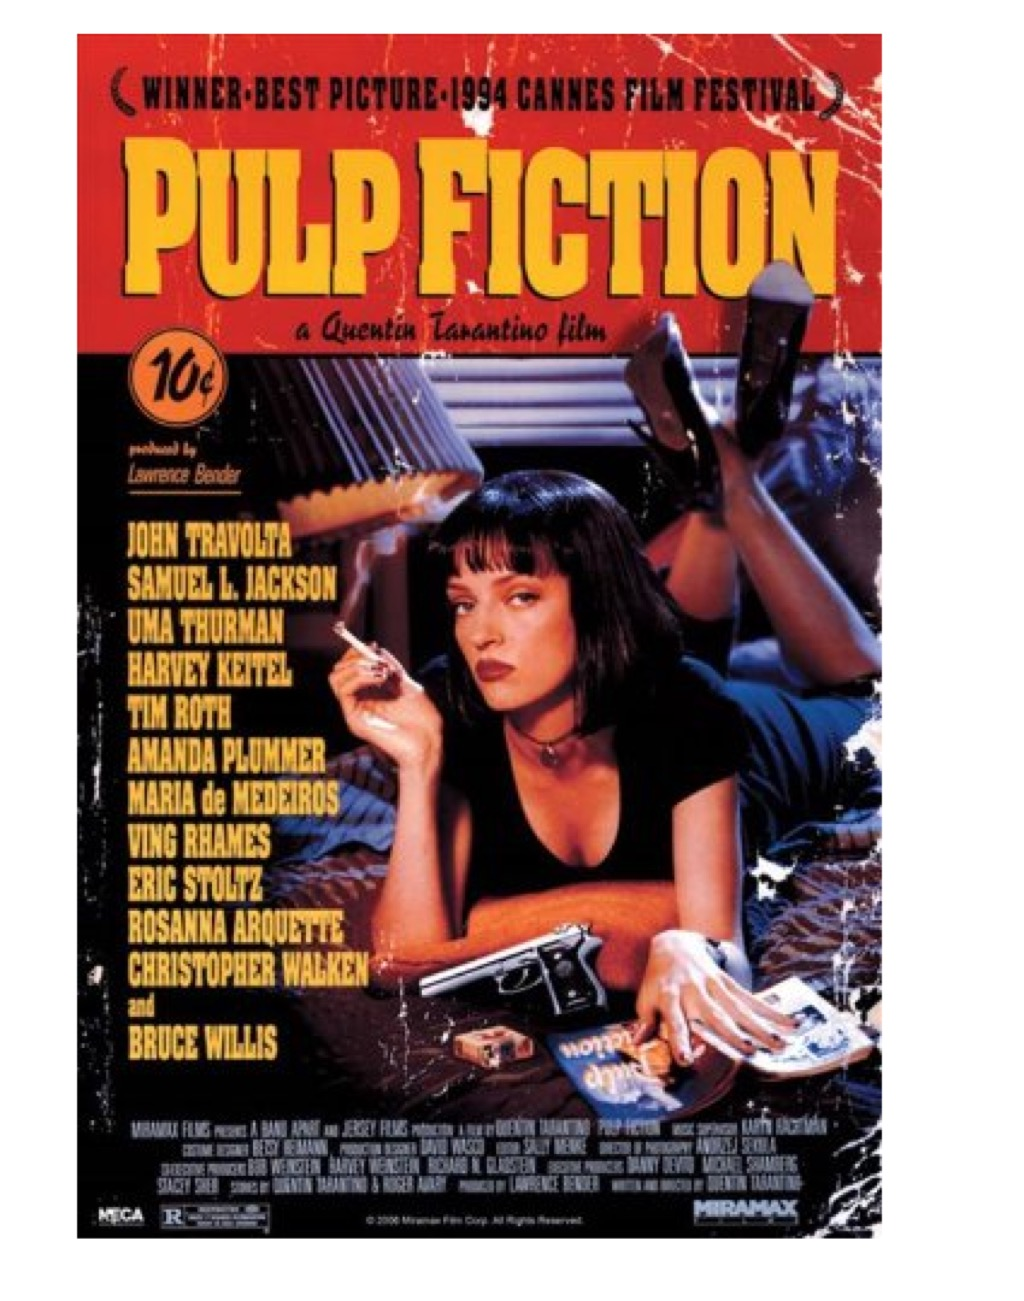 Pulp Fiction poster, what to give up in your 40s